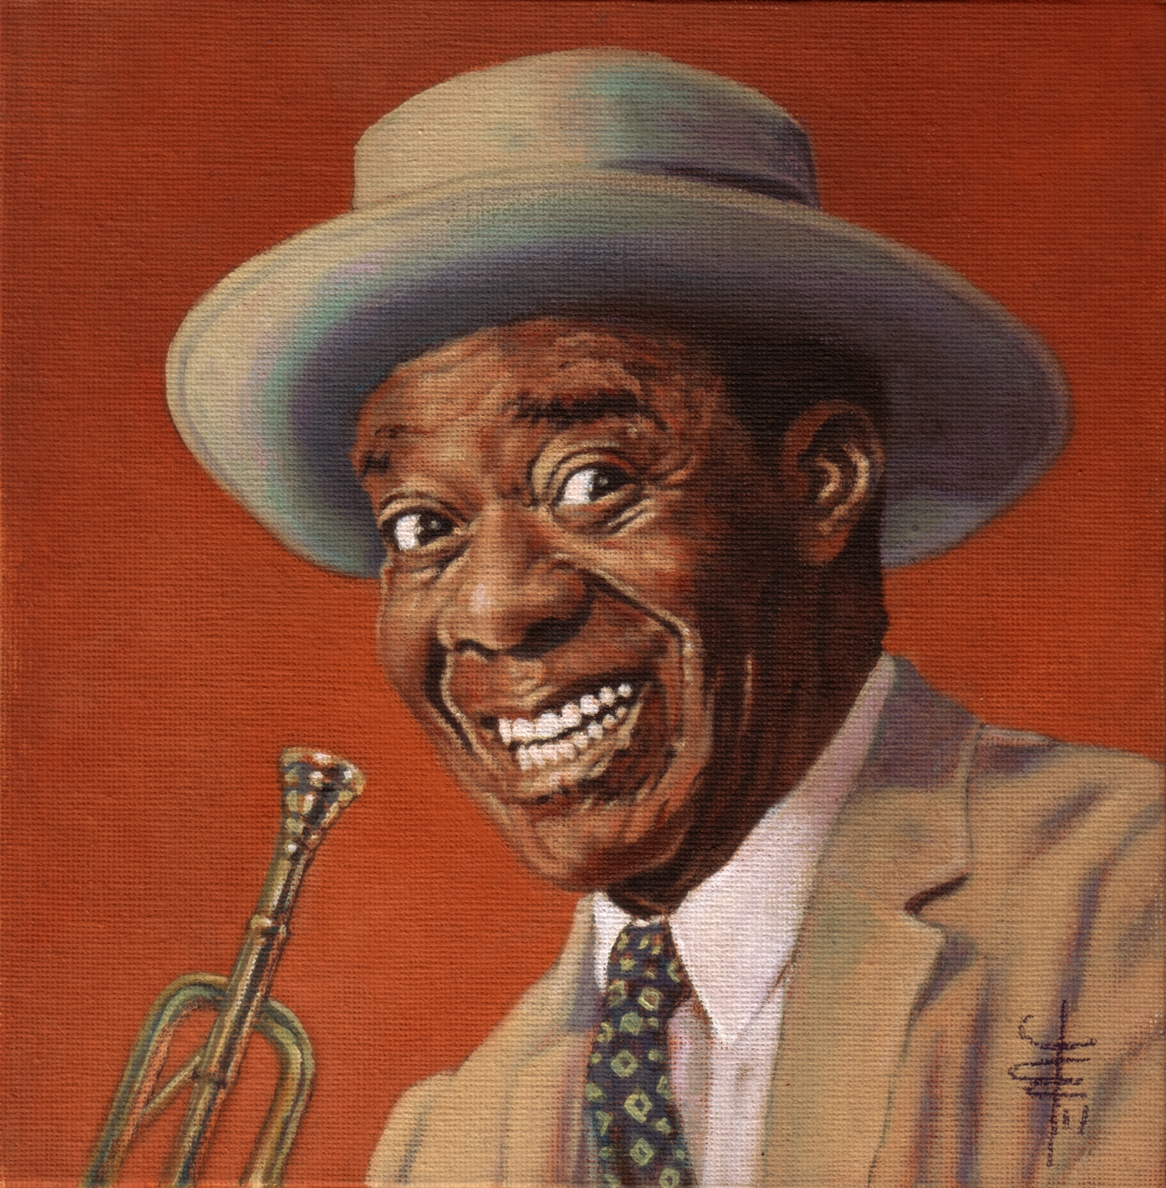 louis armstrong potato head blues listening guide